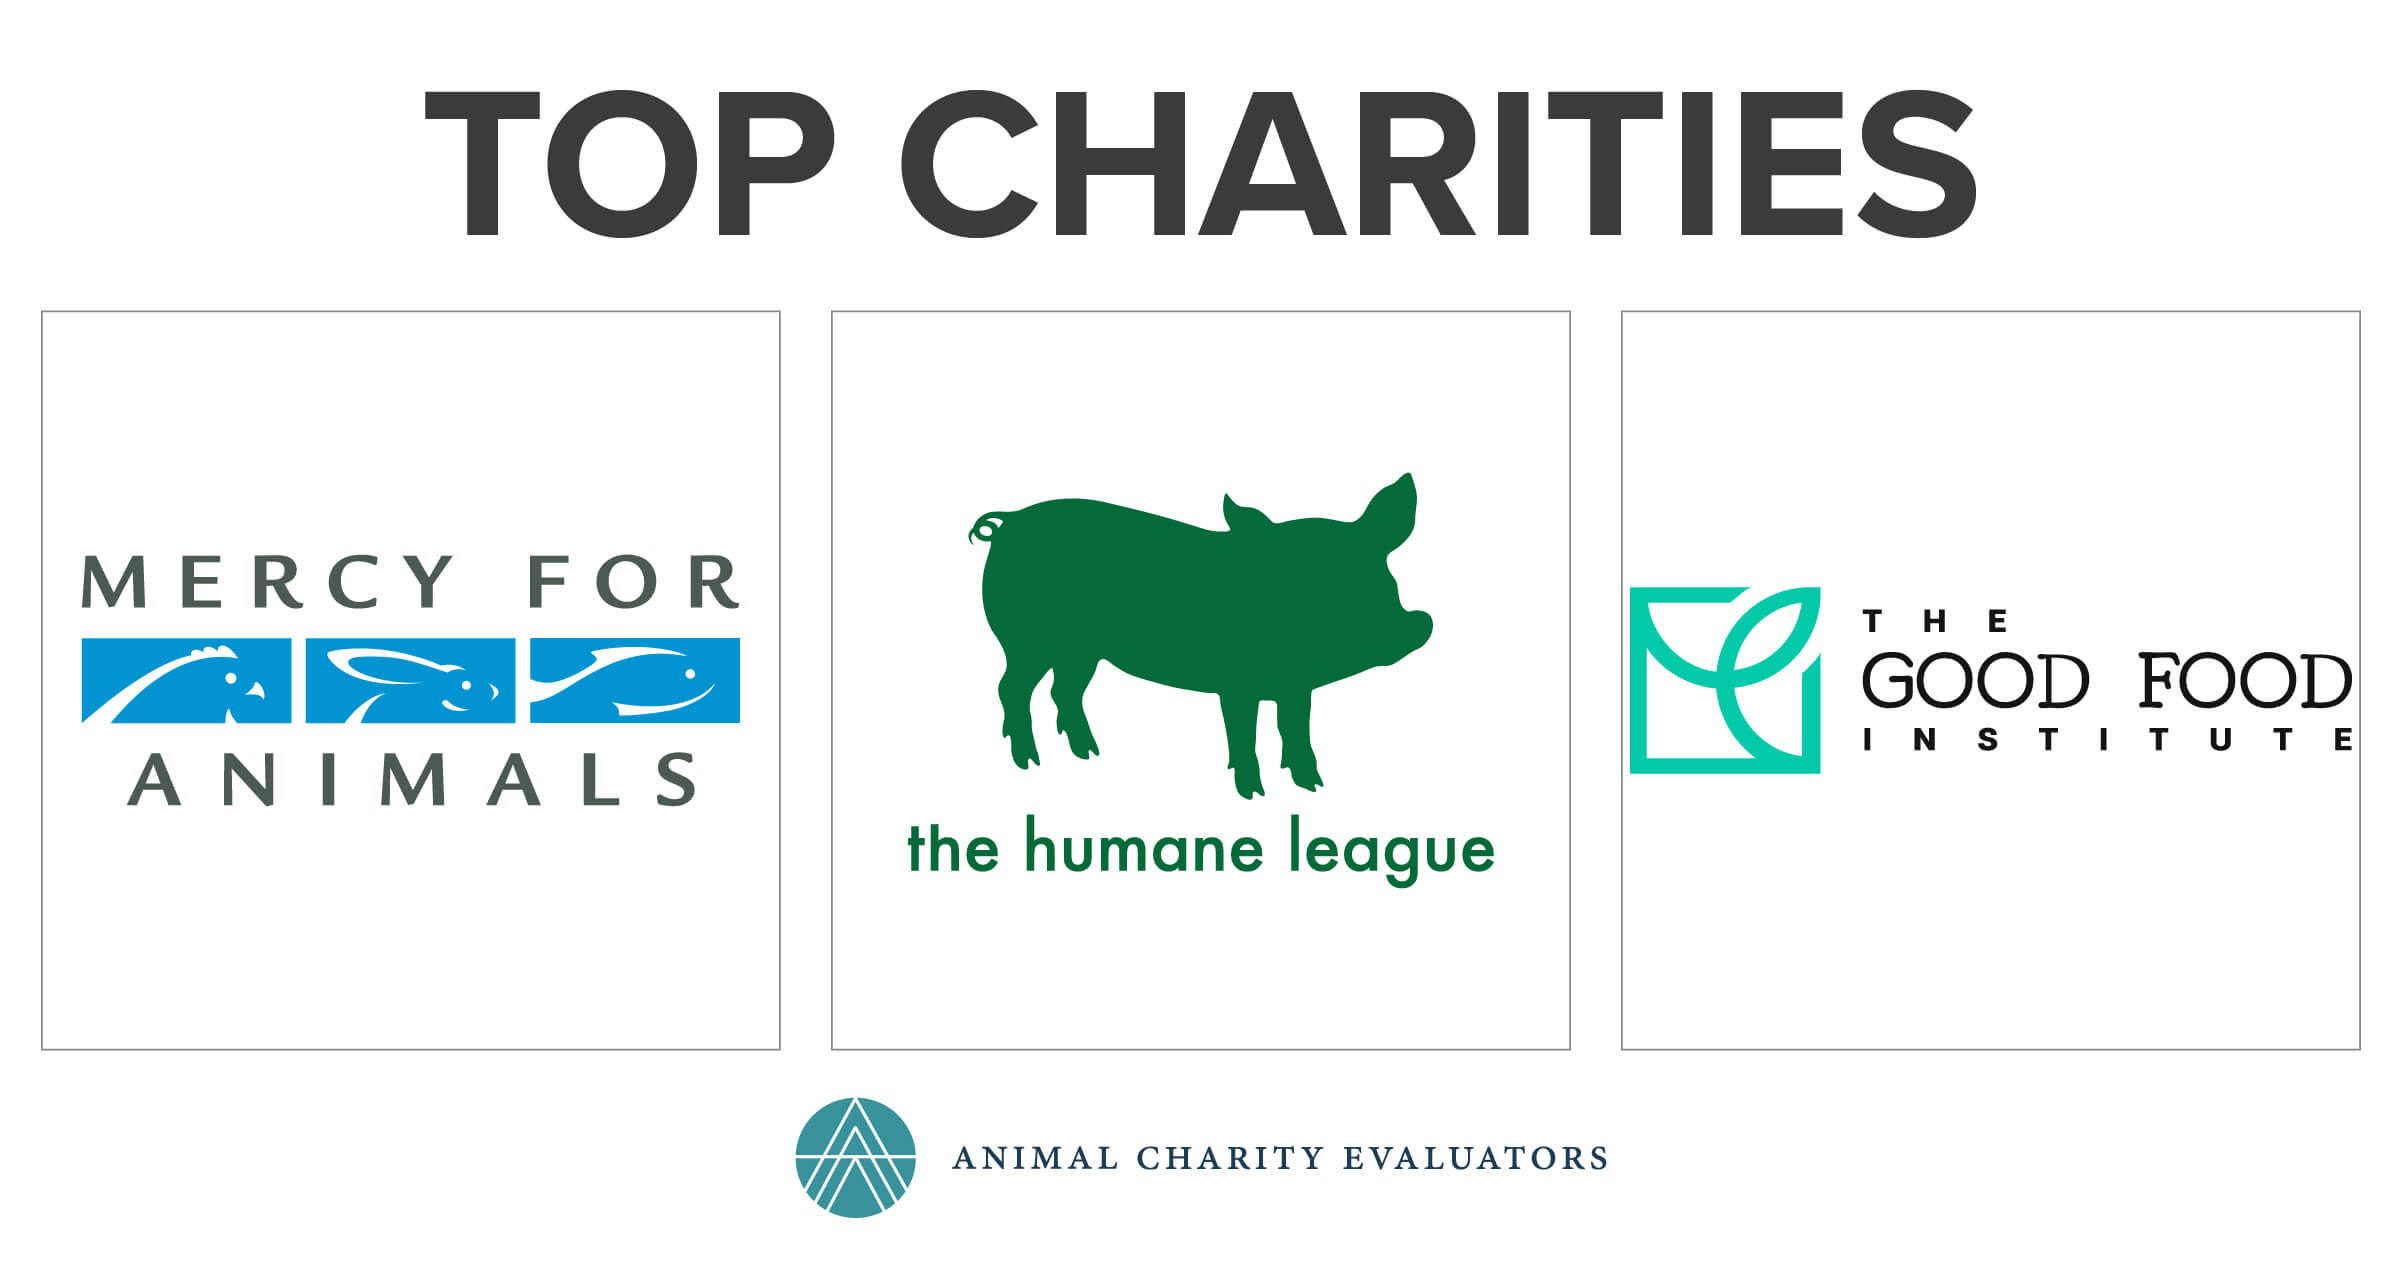 Mercy For Animals, The Humane League, and The Good Food Institute